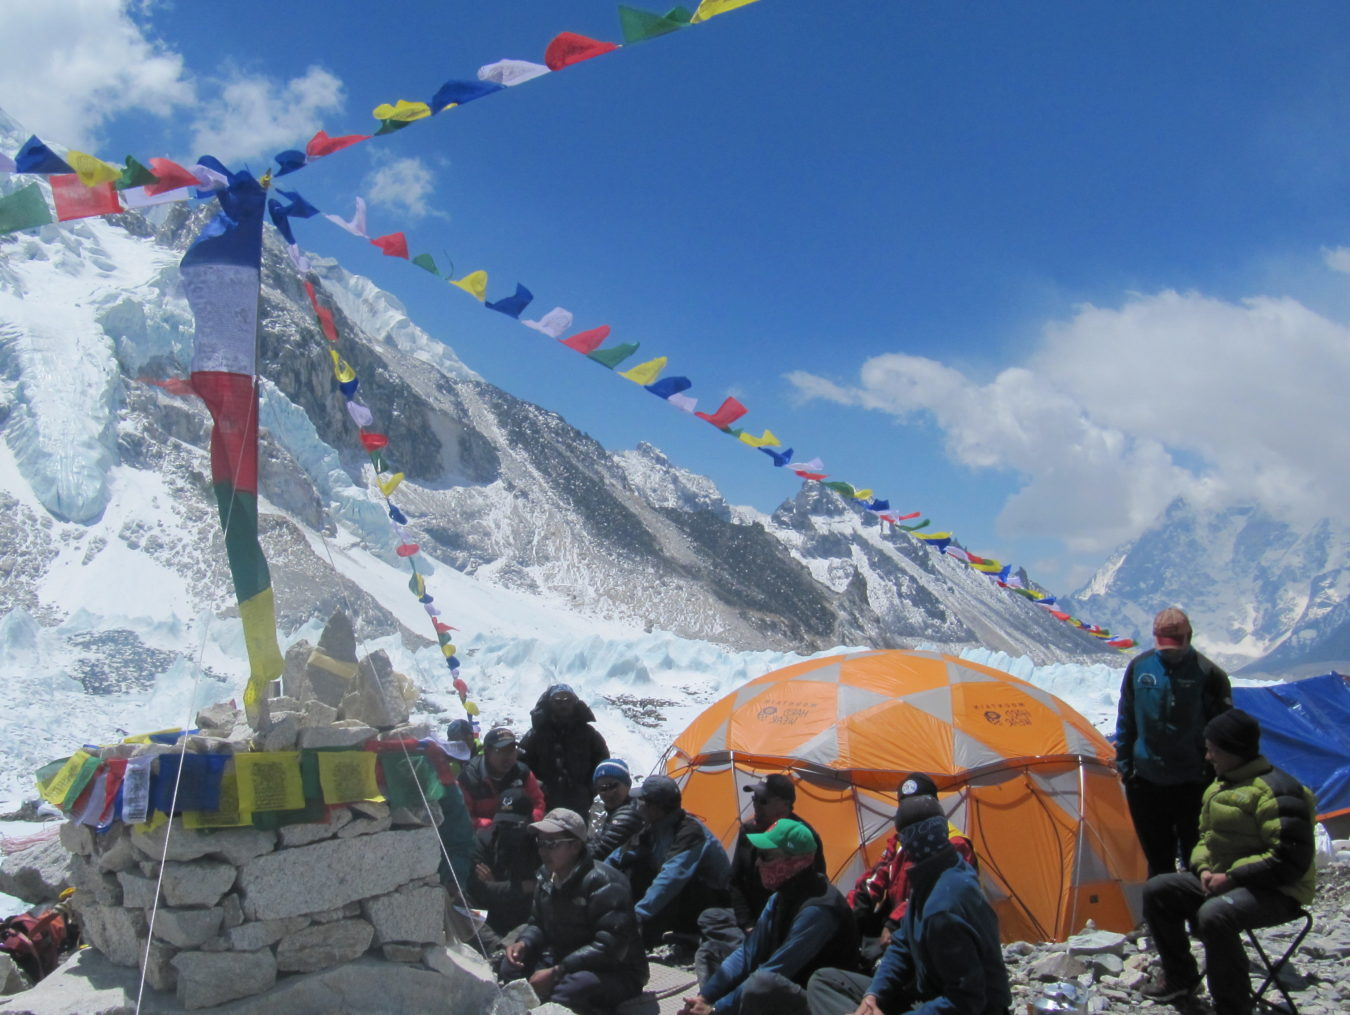 Everest base camp at the colorful prayer flag pole